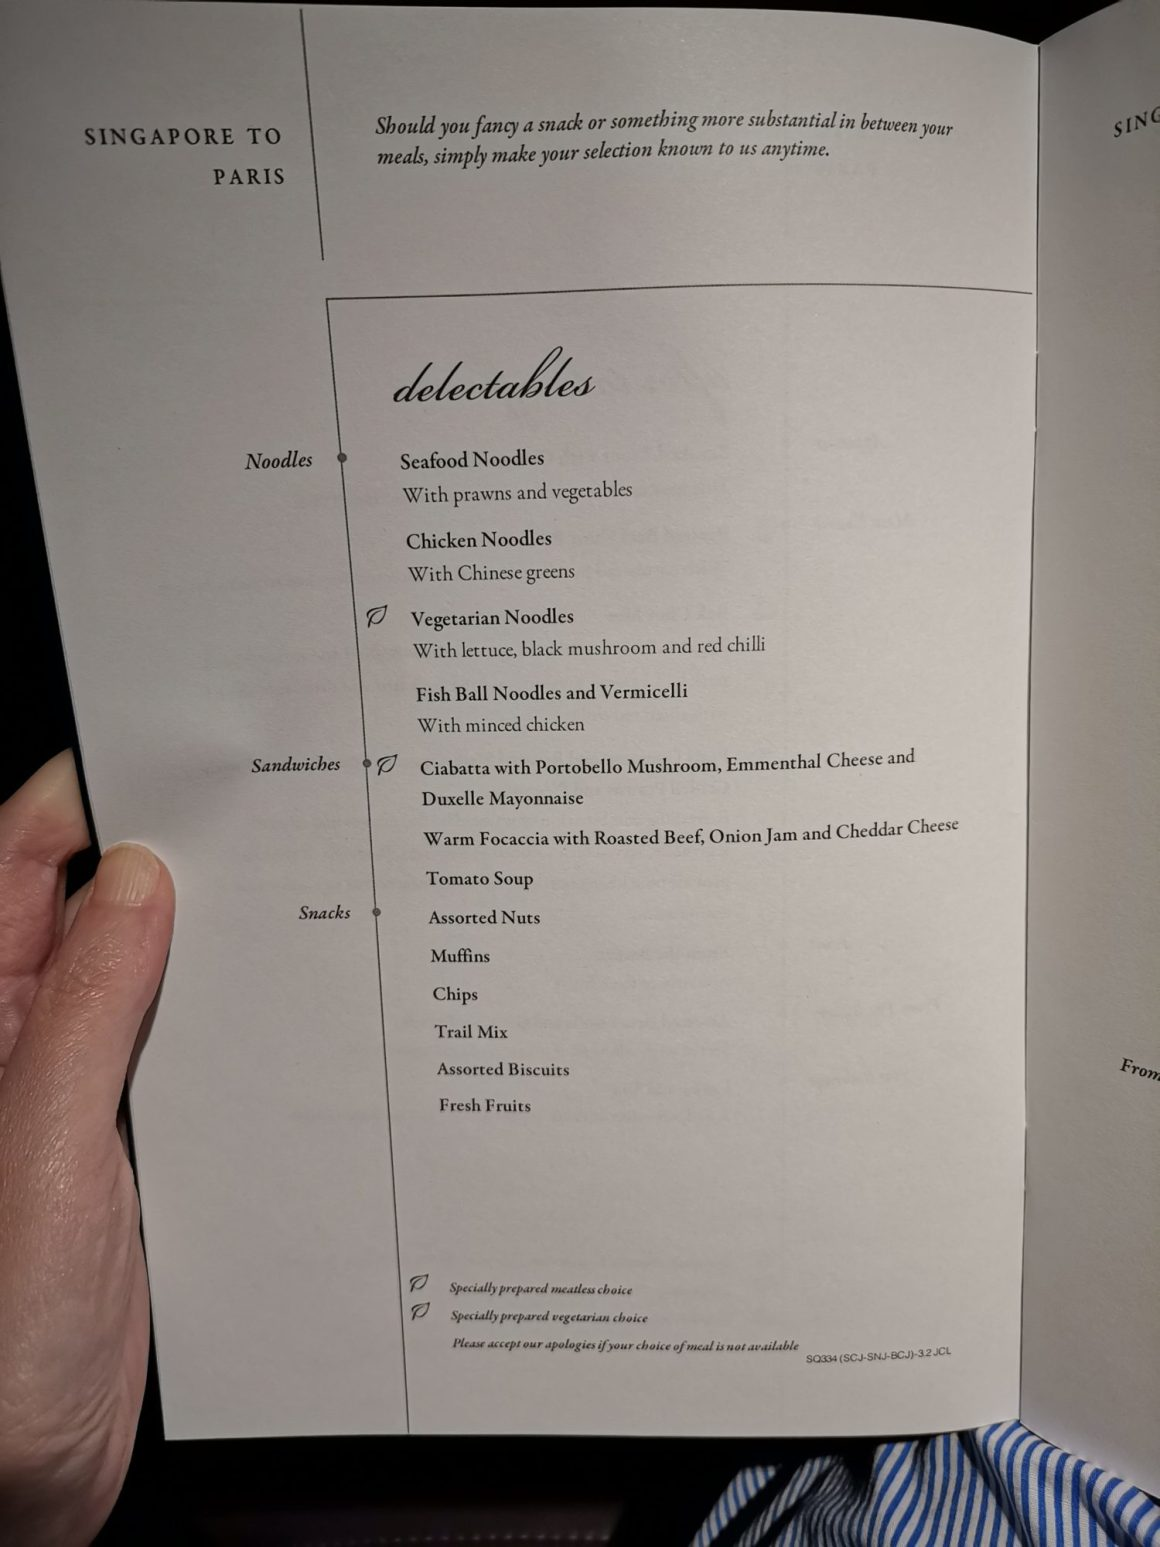 Singapore Airlines Business Class SQ334 From Singapore To Paris – Delectables Menu